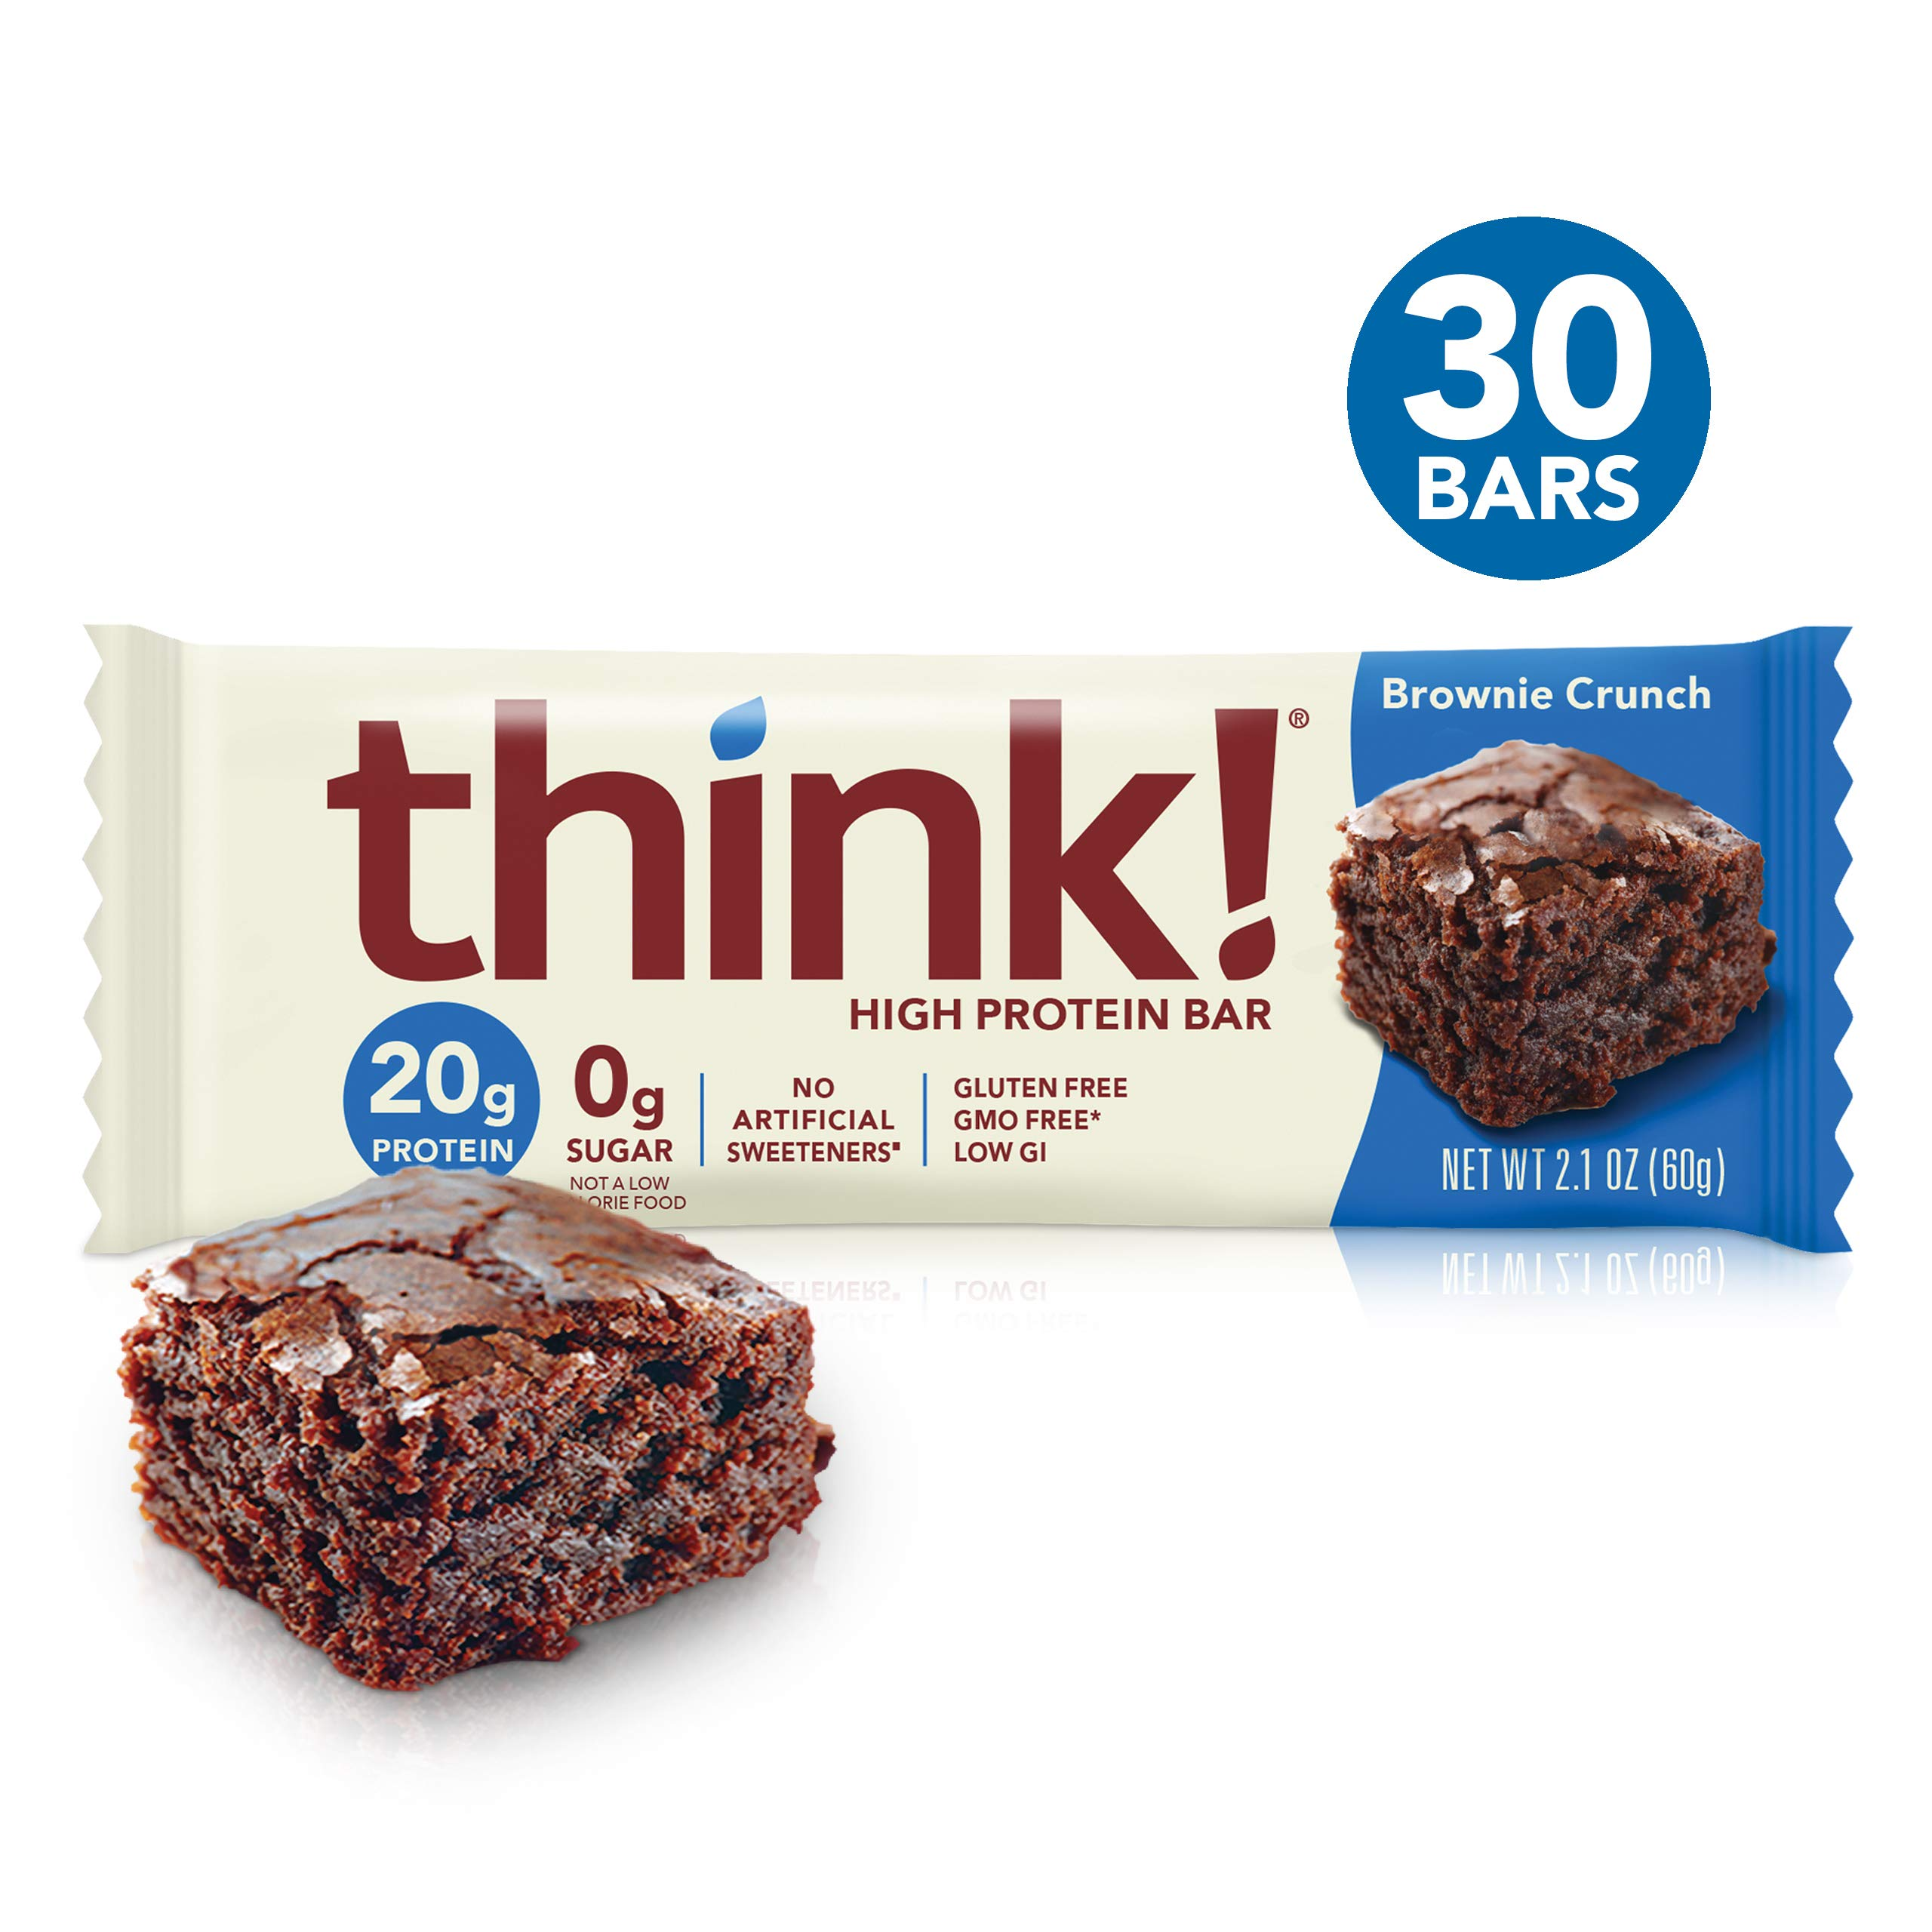 think! (thinkThin) High Protein Bars - Brownie Crunch, 20g Protein, 0g Sugar, No Artificial Sweeteners** Gluten Free, GMO Free*, 2.1 Ounce (30 Count) - Packaging May Vary by think!